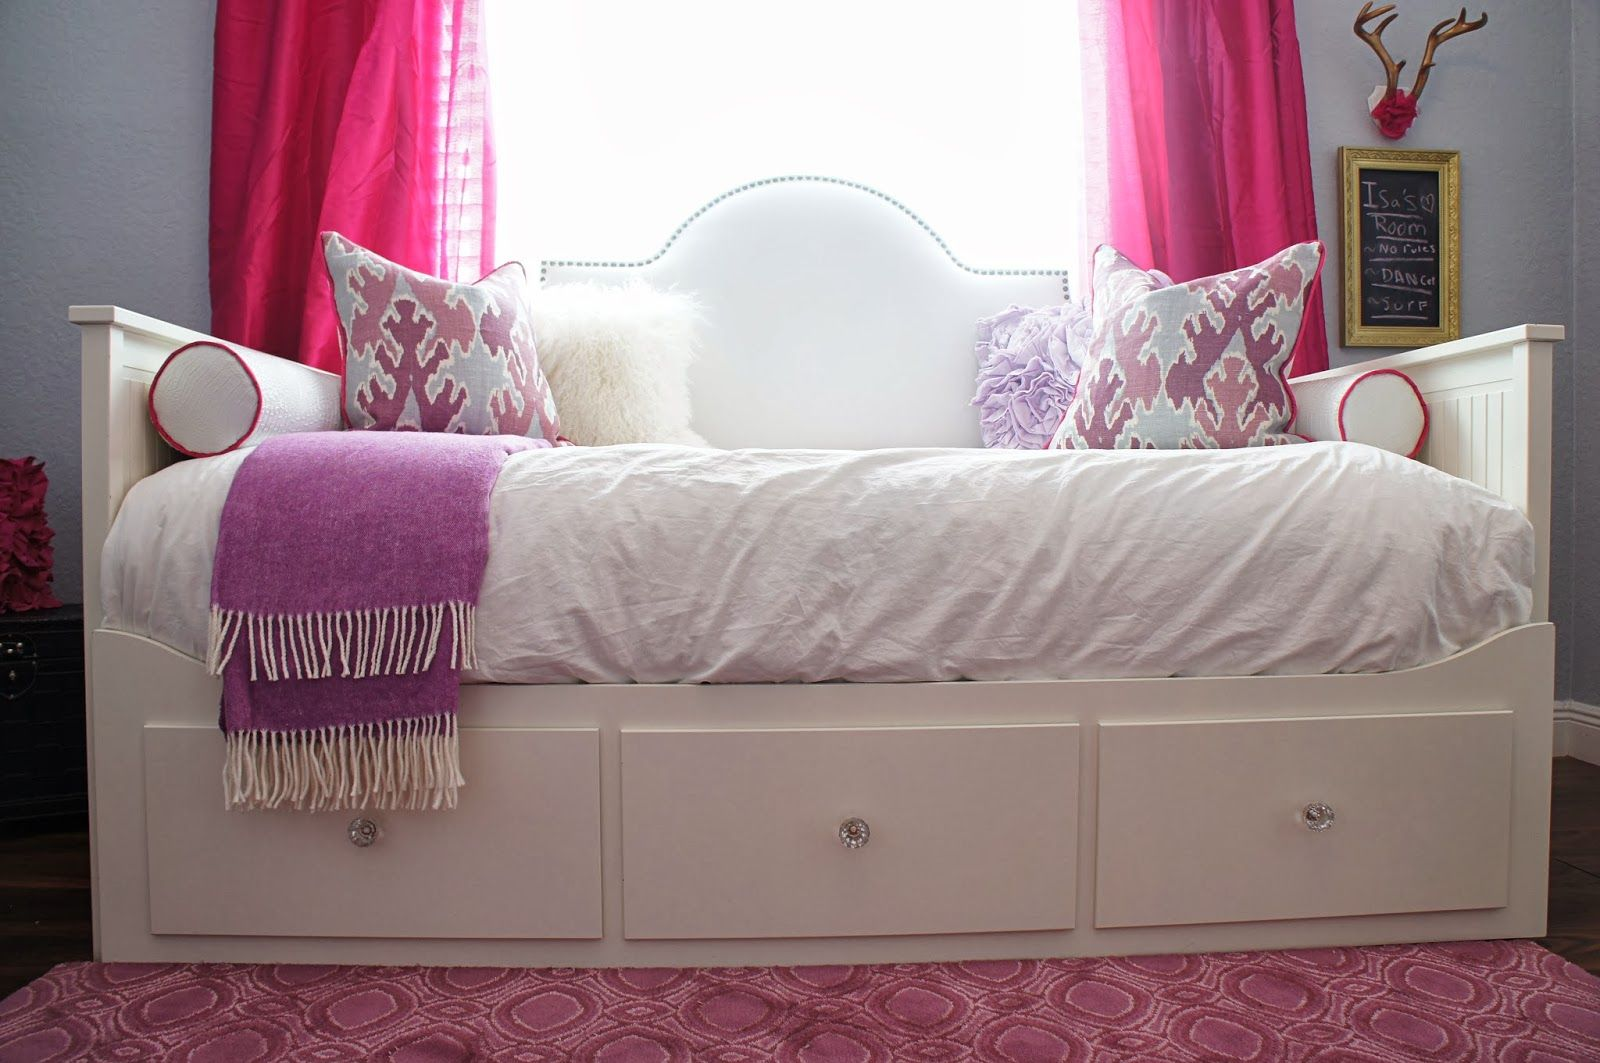 day beds ikea home furniture. The Cuban In My Coffee: Ikea Hack, Upholstered Headboard For Hemnes Day Bed | Hadley\u0027s Big Girl Room Pinterest HEMNES, Hack And Beds Home Furniture B